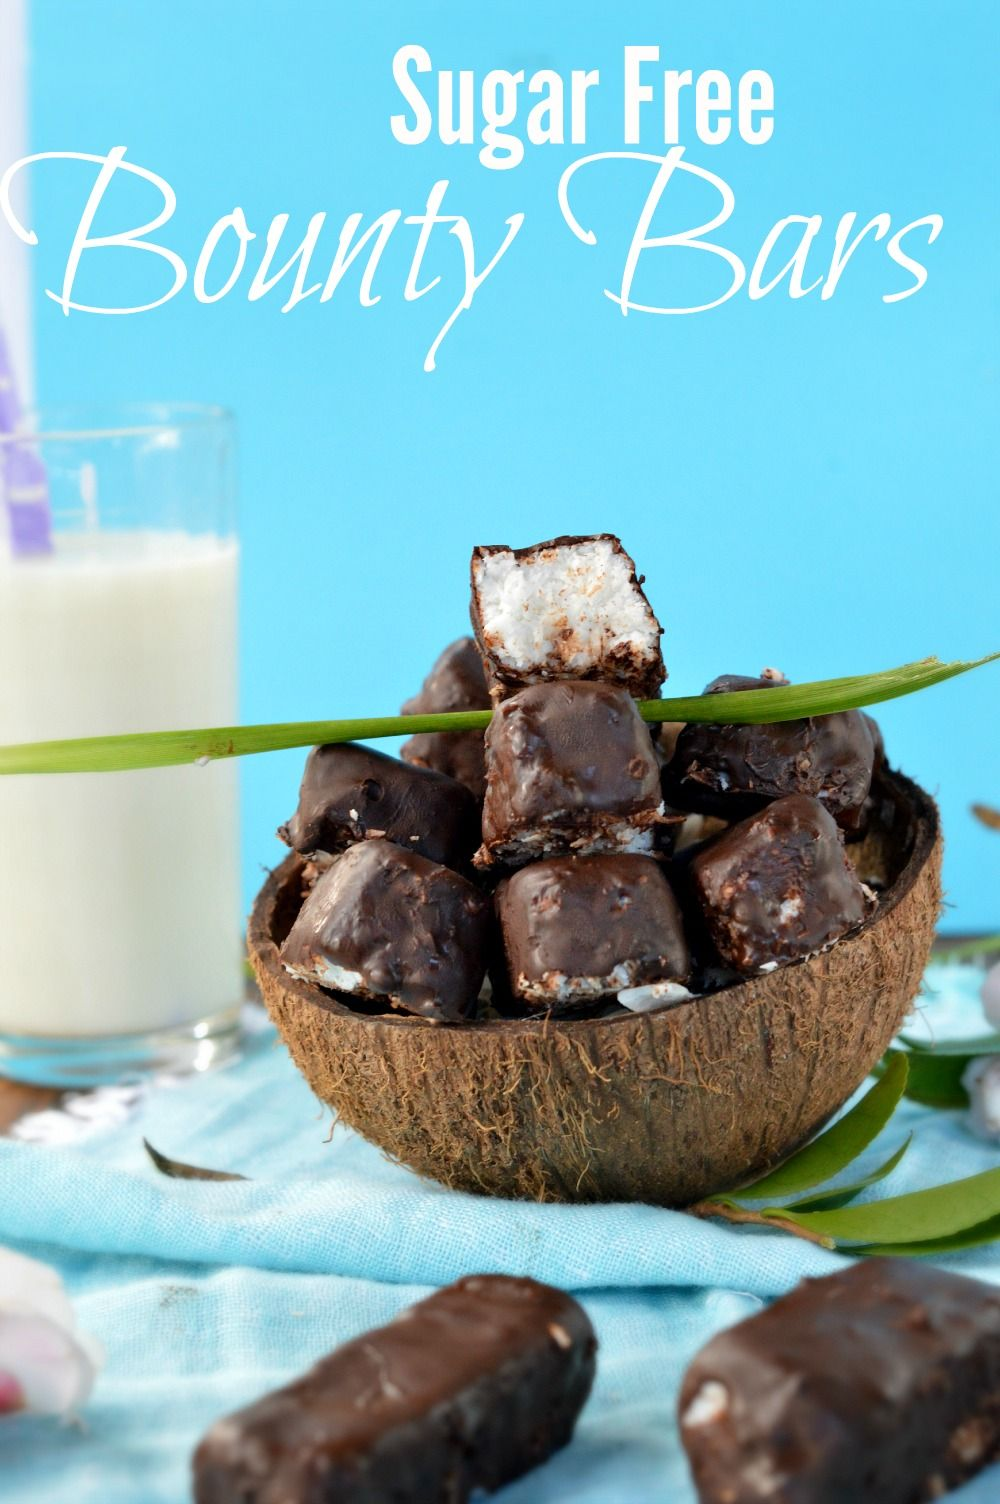 Sugar free bounty bars chocolate and candy pinterest sugar those sugar free bounty bars are gluten free and low fat too perfect for diabetic looking for a sweet treat forumfinder Image collections